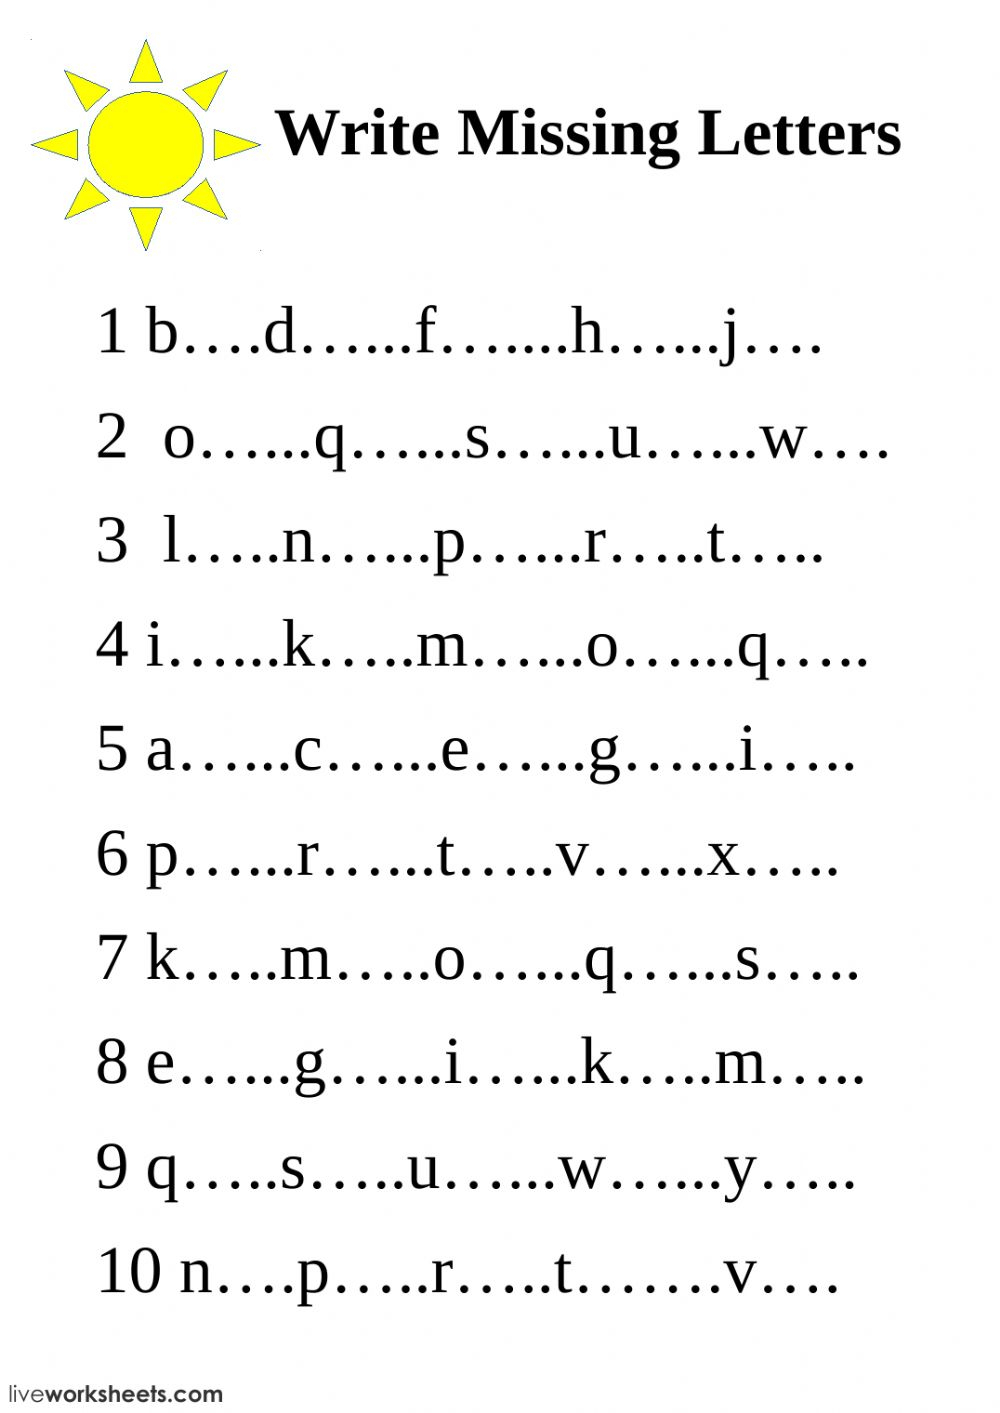 Write Missing Letters - Interactive Worksheet for Year 1 Alphabet Worksheets